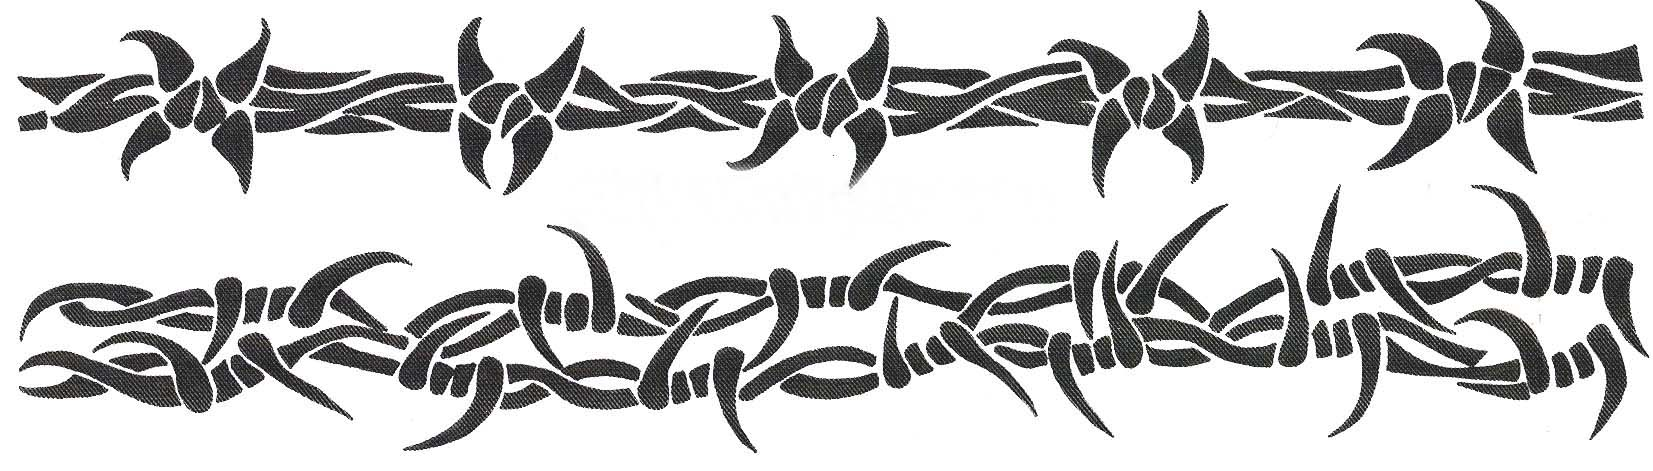 Barbed Wire Armband Temporary Tattoo Design Sample